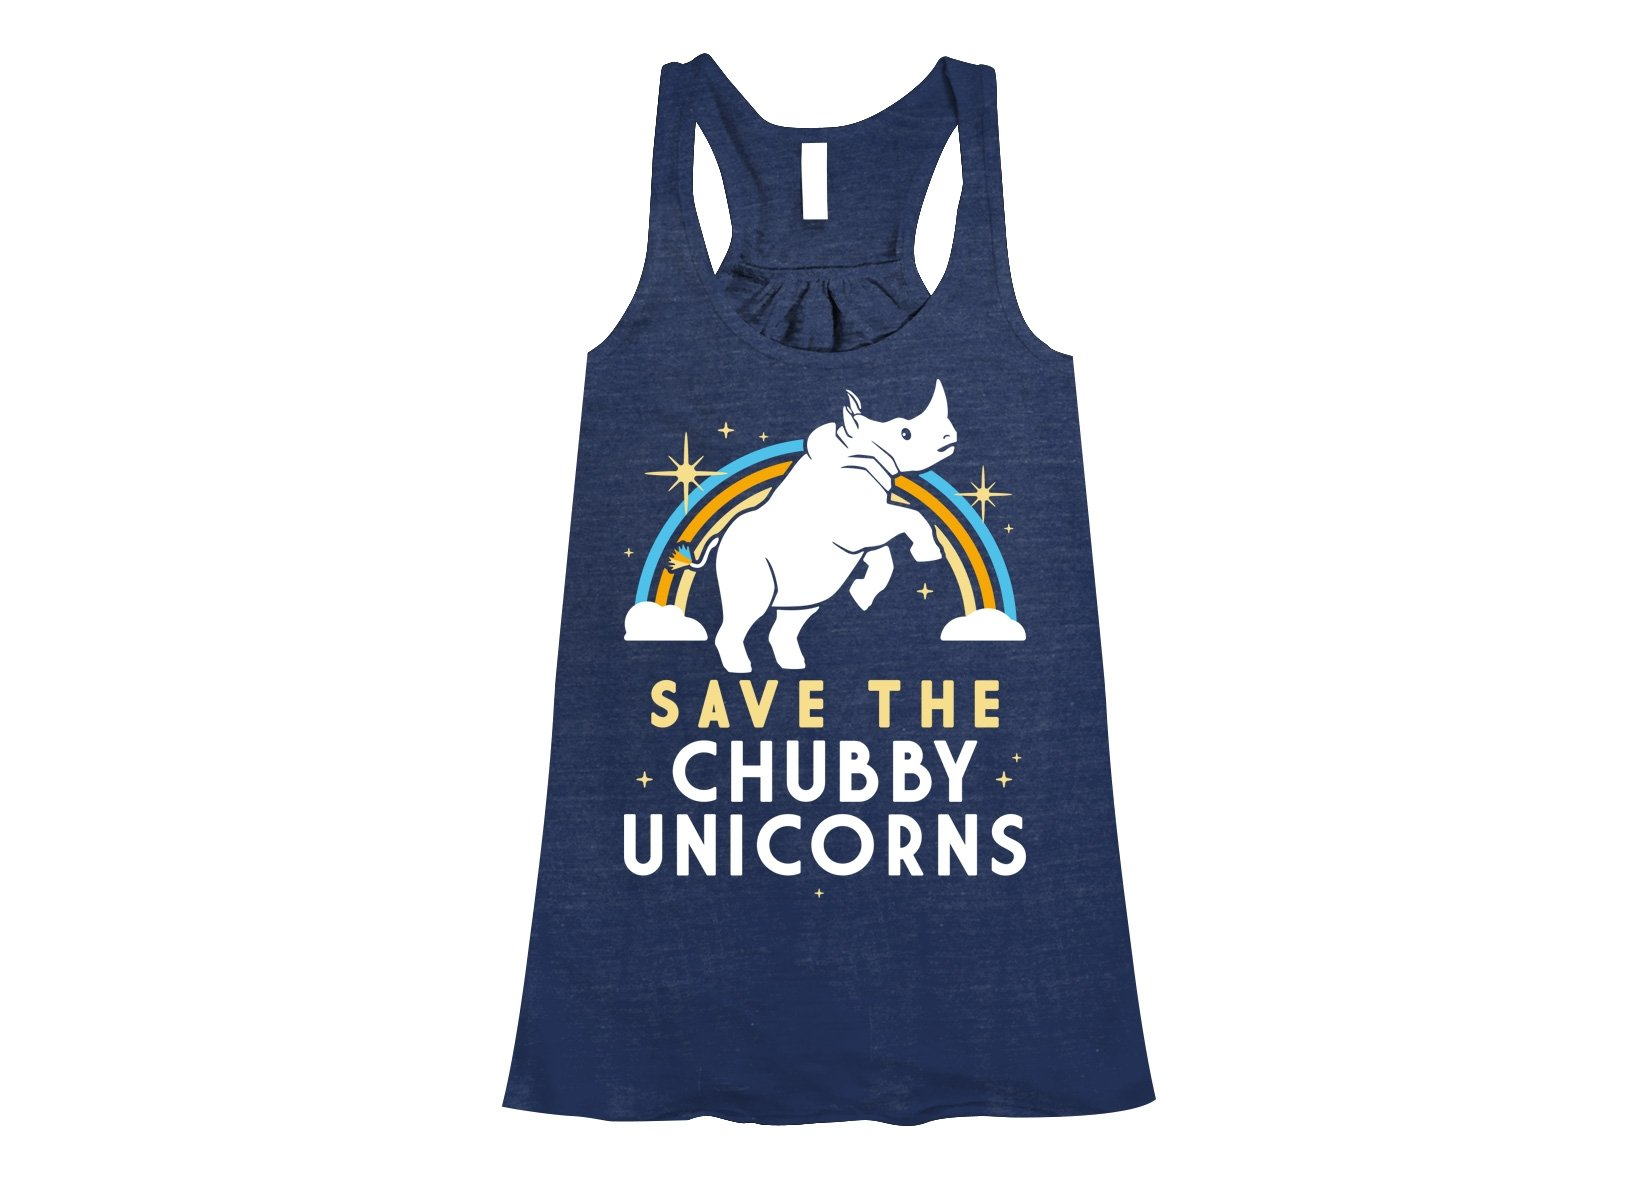 Save The Chubby Unicorns on Womens Tanks T-Shirt